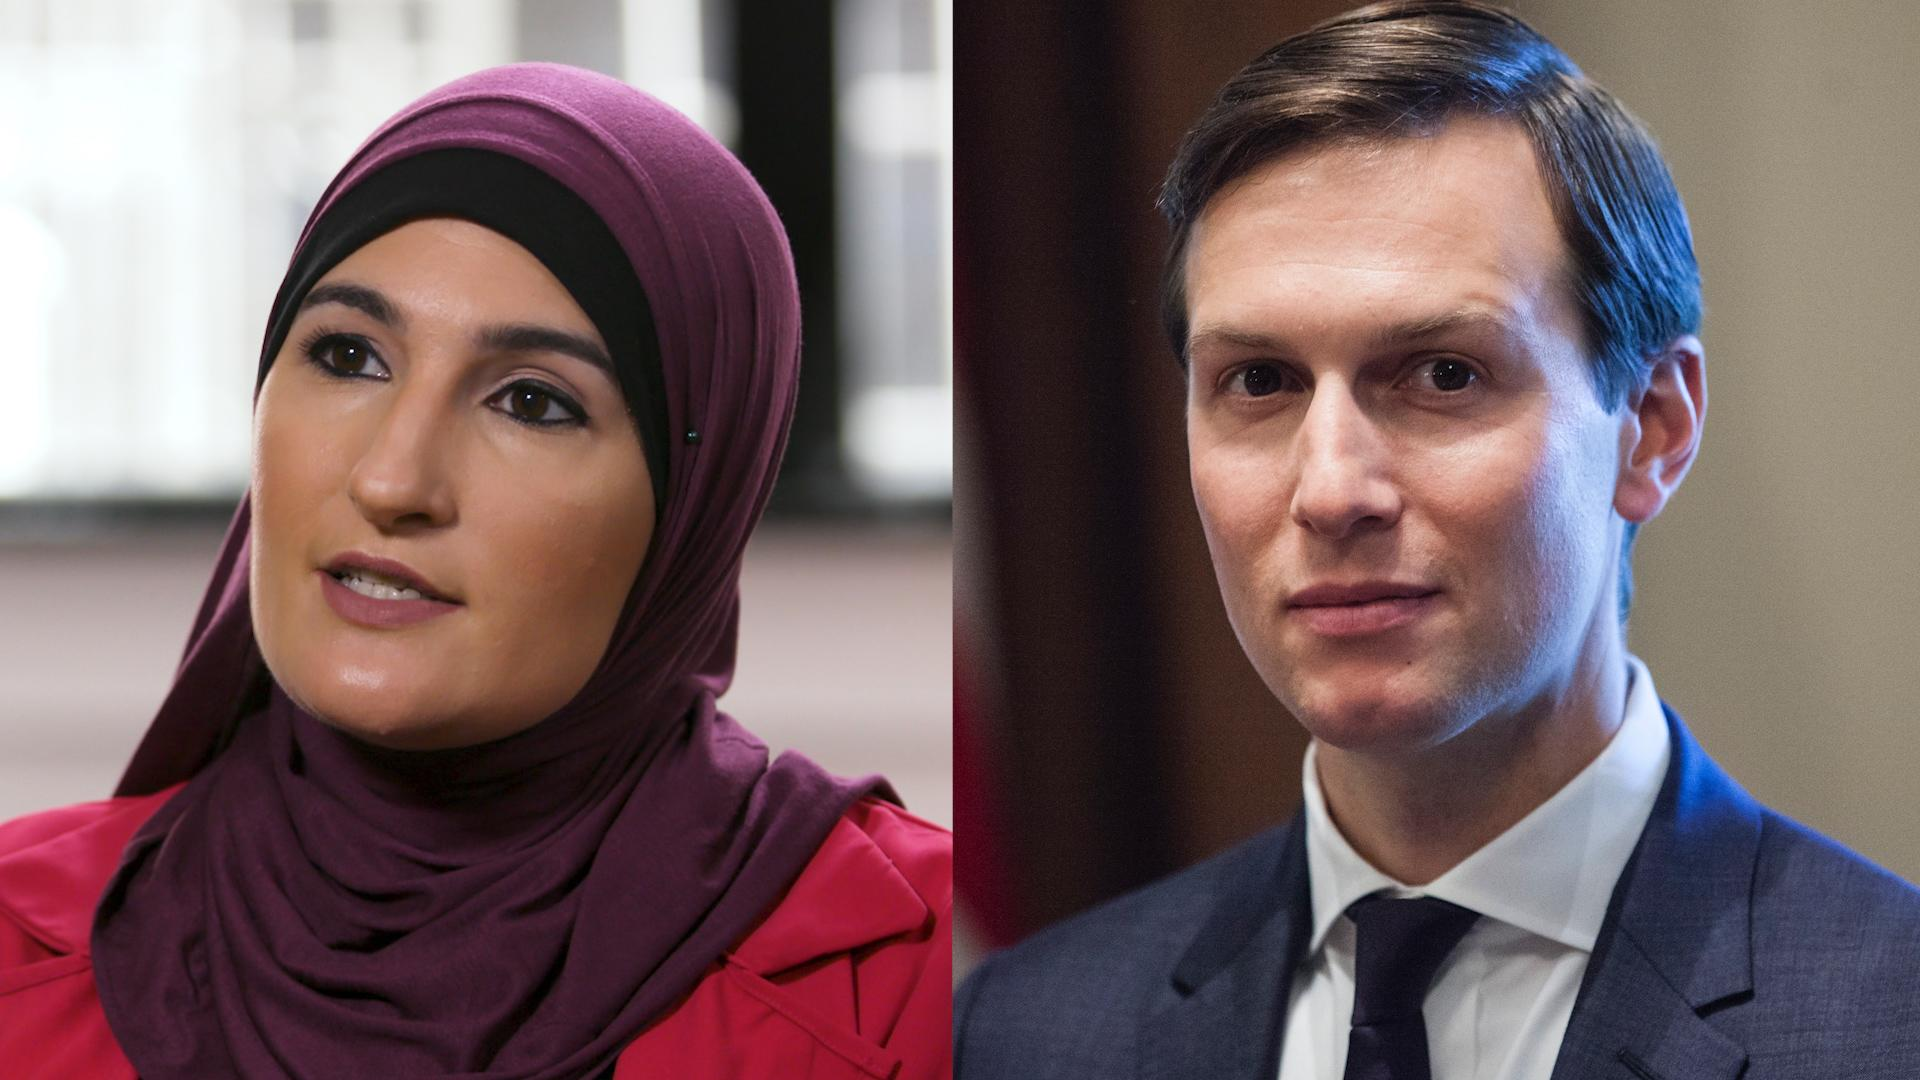 Activist Linda Sarsour: Jared Kushner 'the last person' to bring peace to Palestinian-Israeli conflict